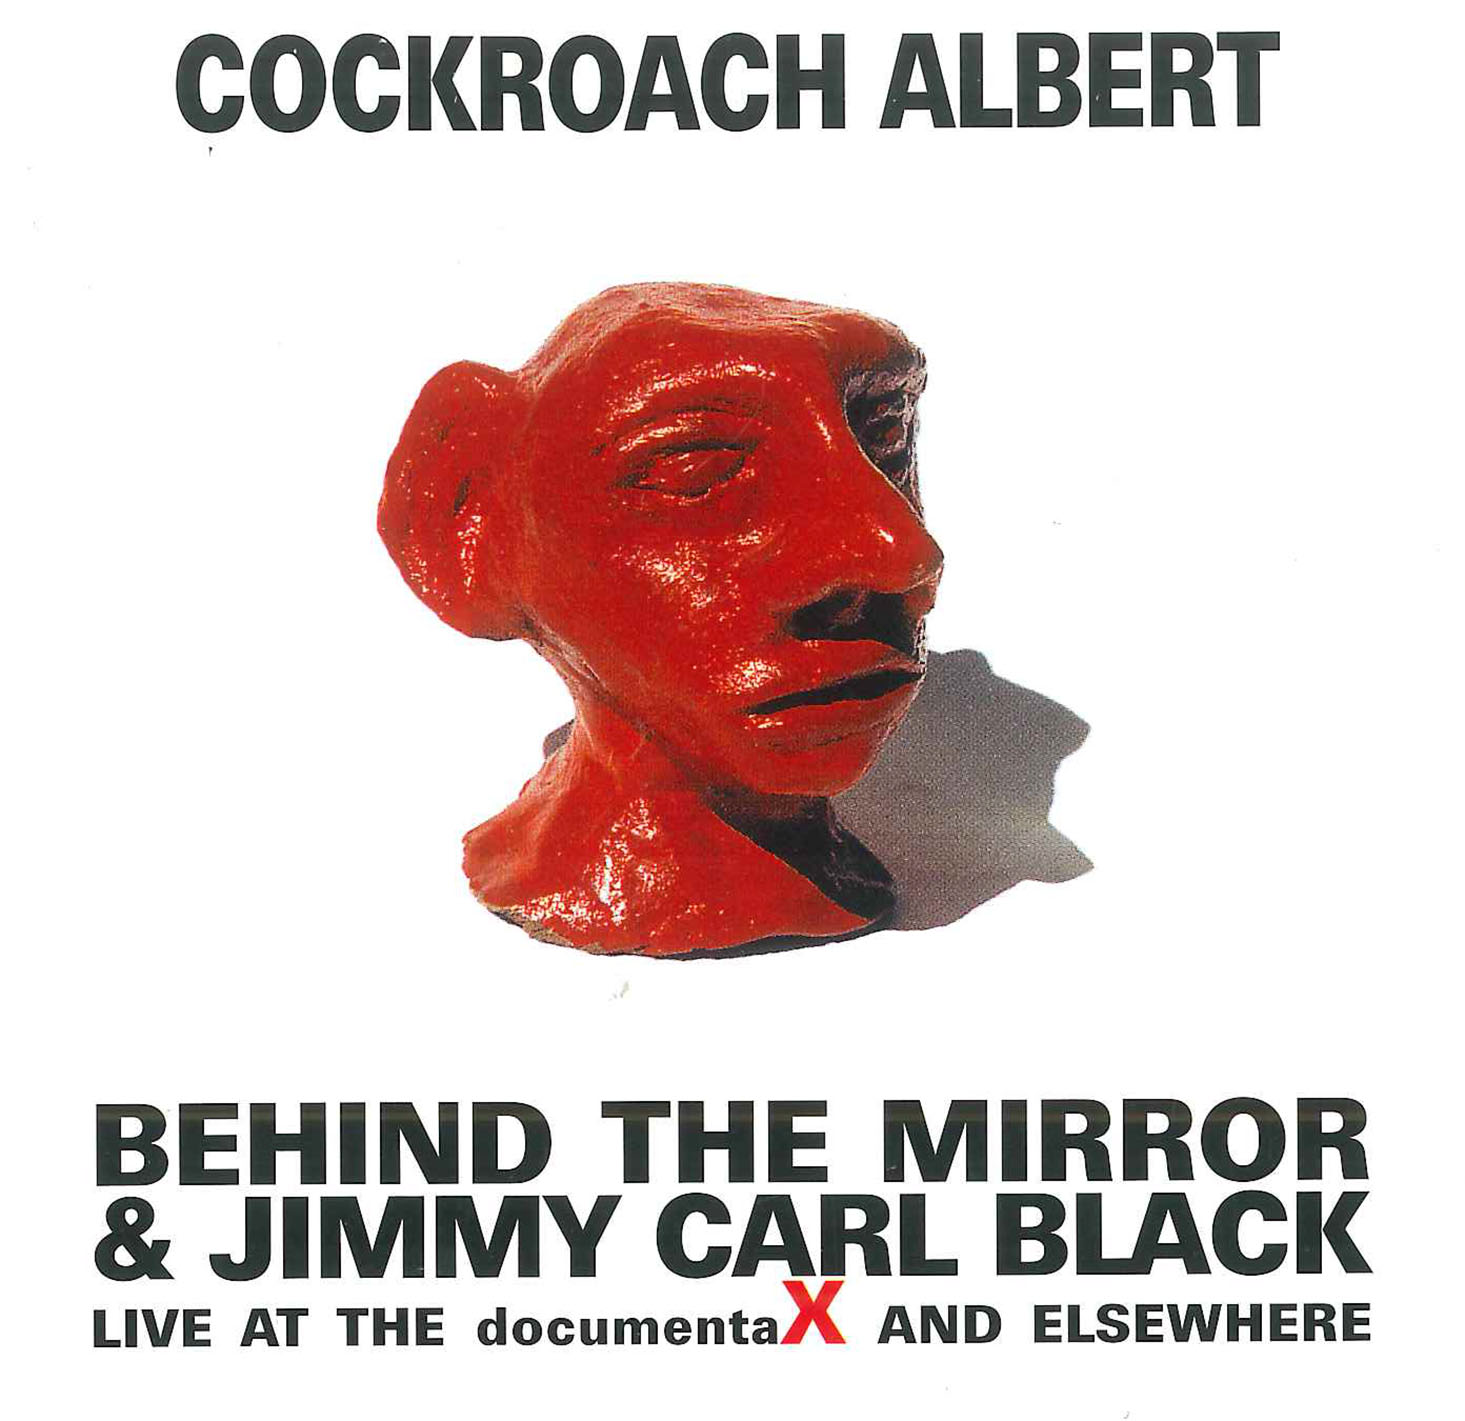 CD: Cockroach Albert by Behind the Mirror & Jimmy Carl Black